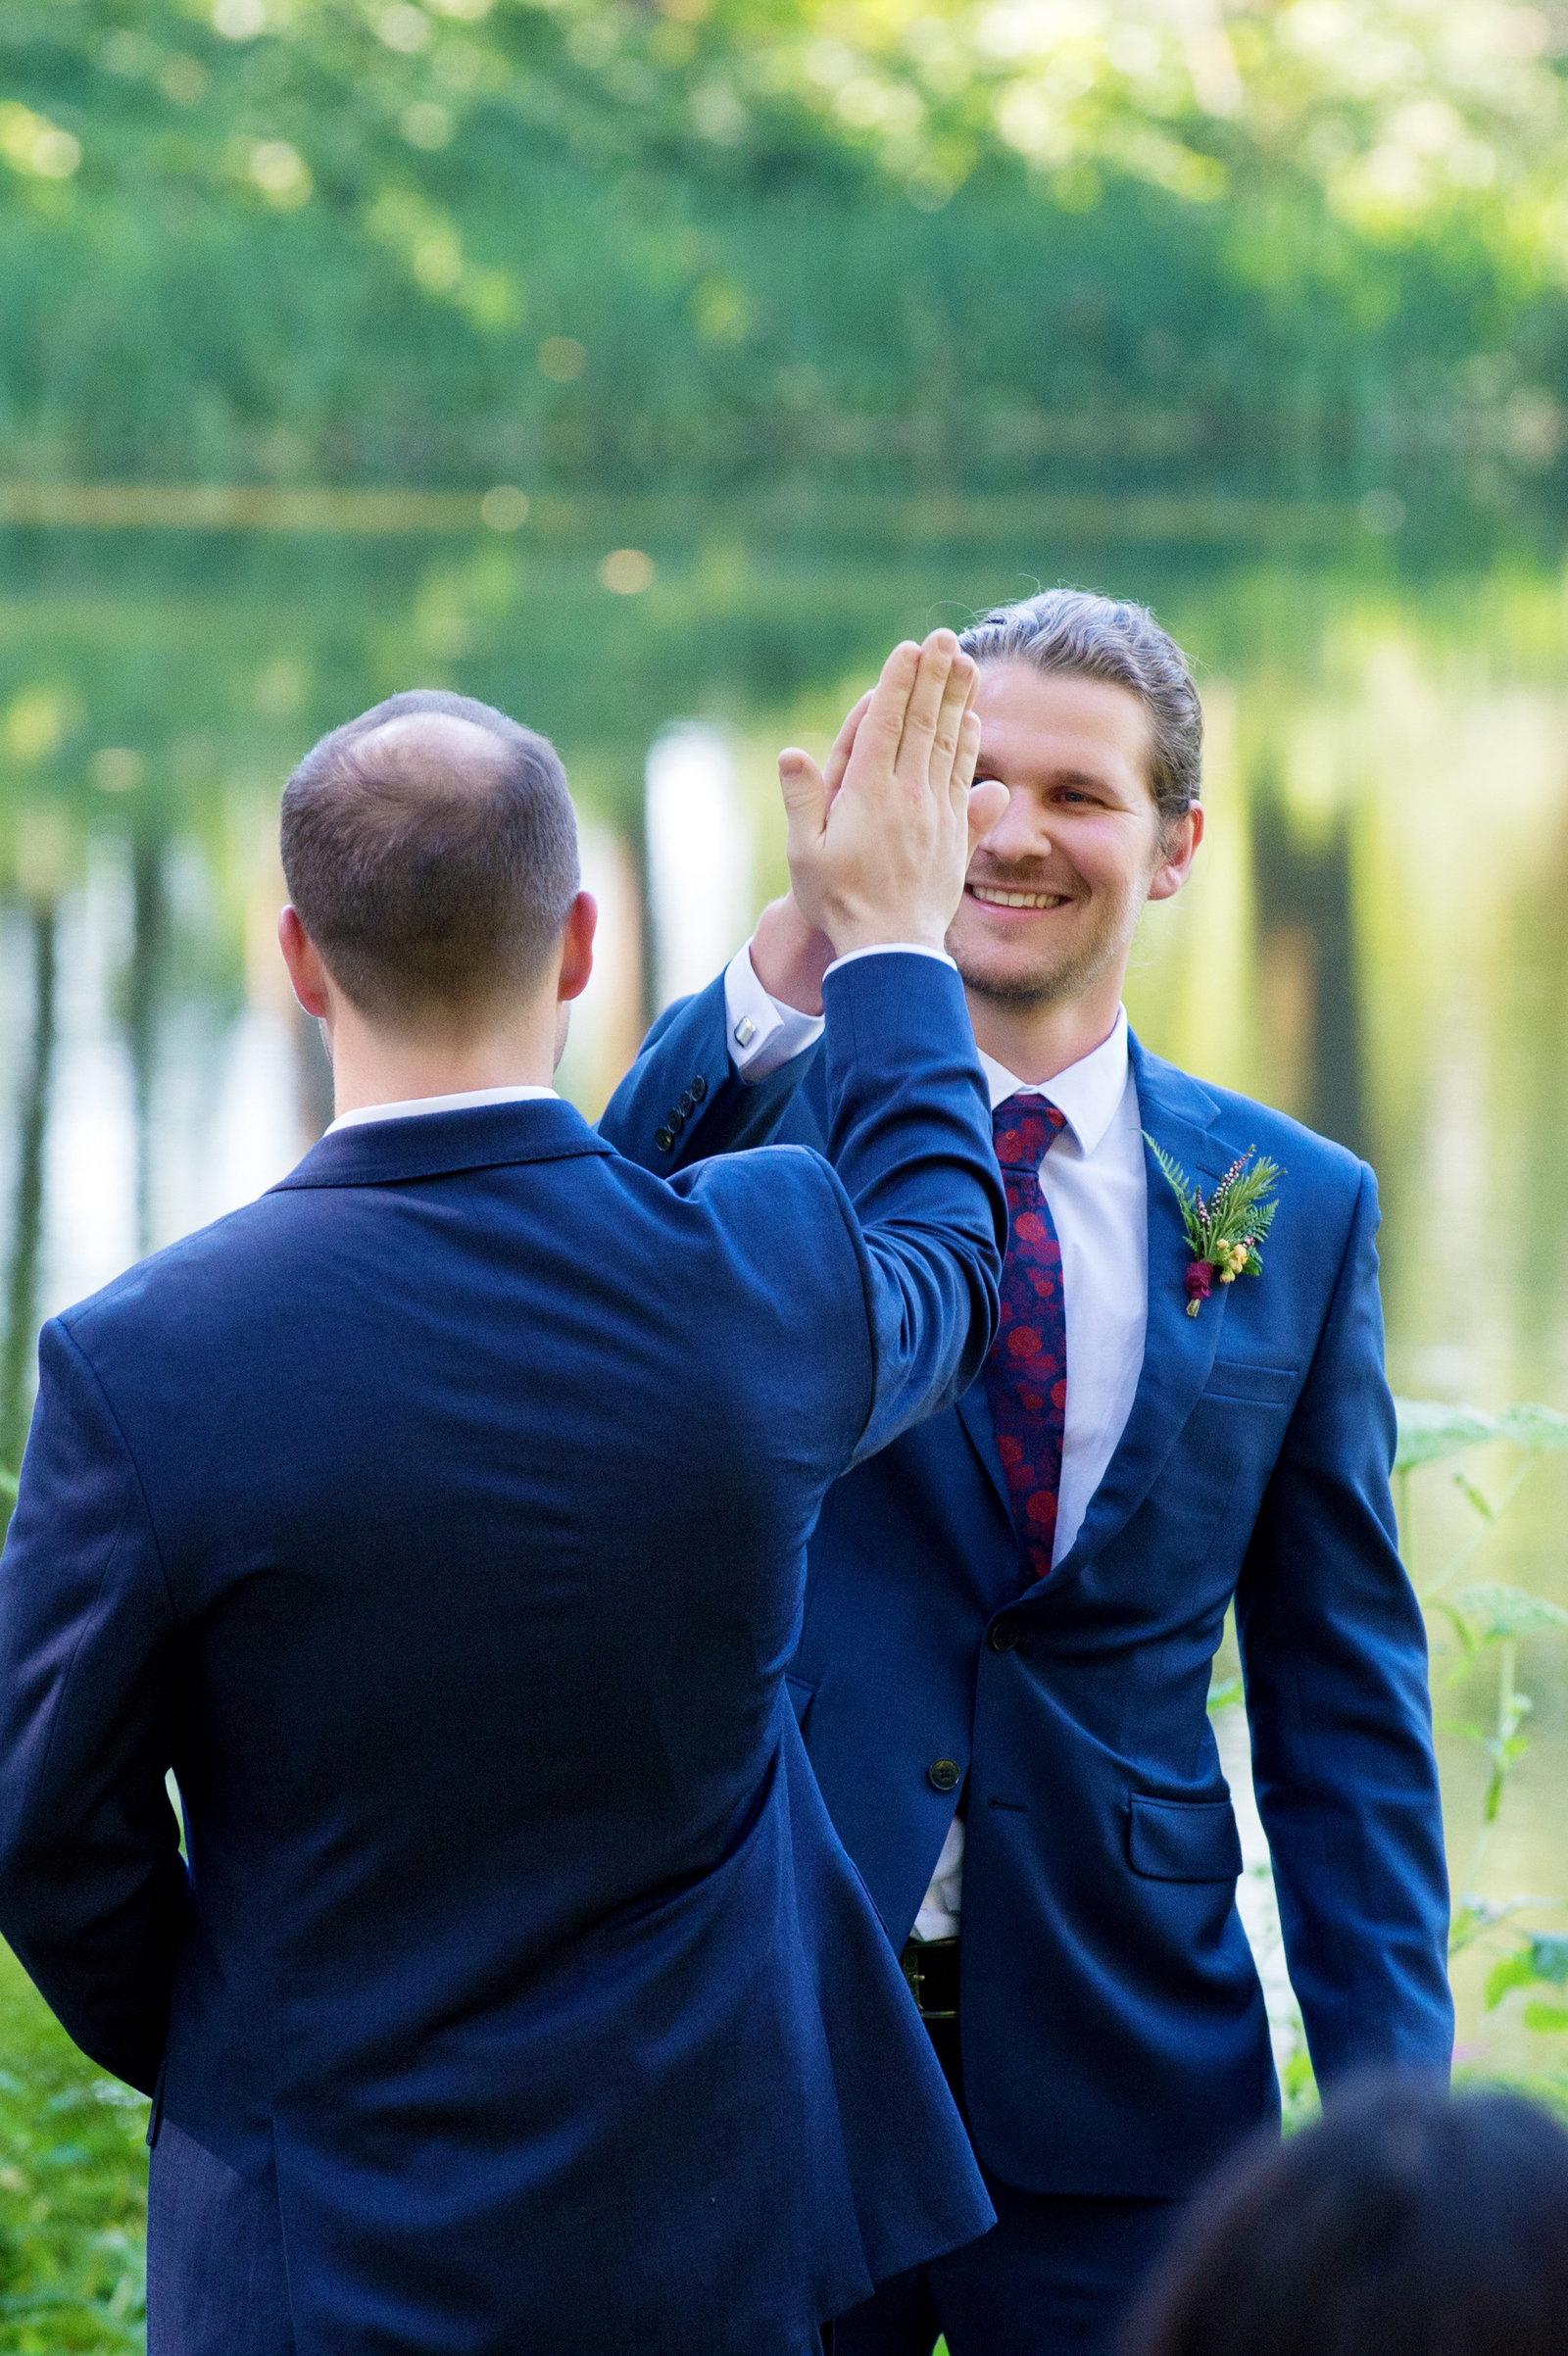 groomsman gives groom a high five at front of ceremony